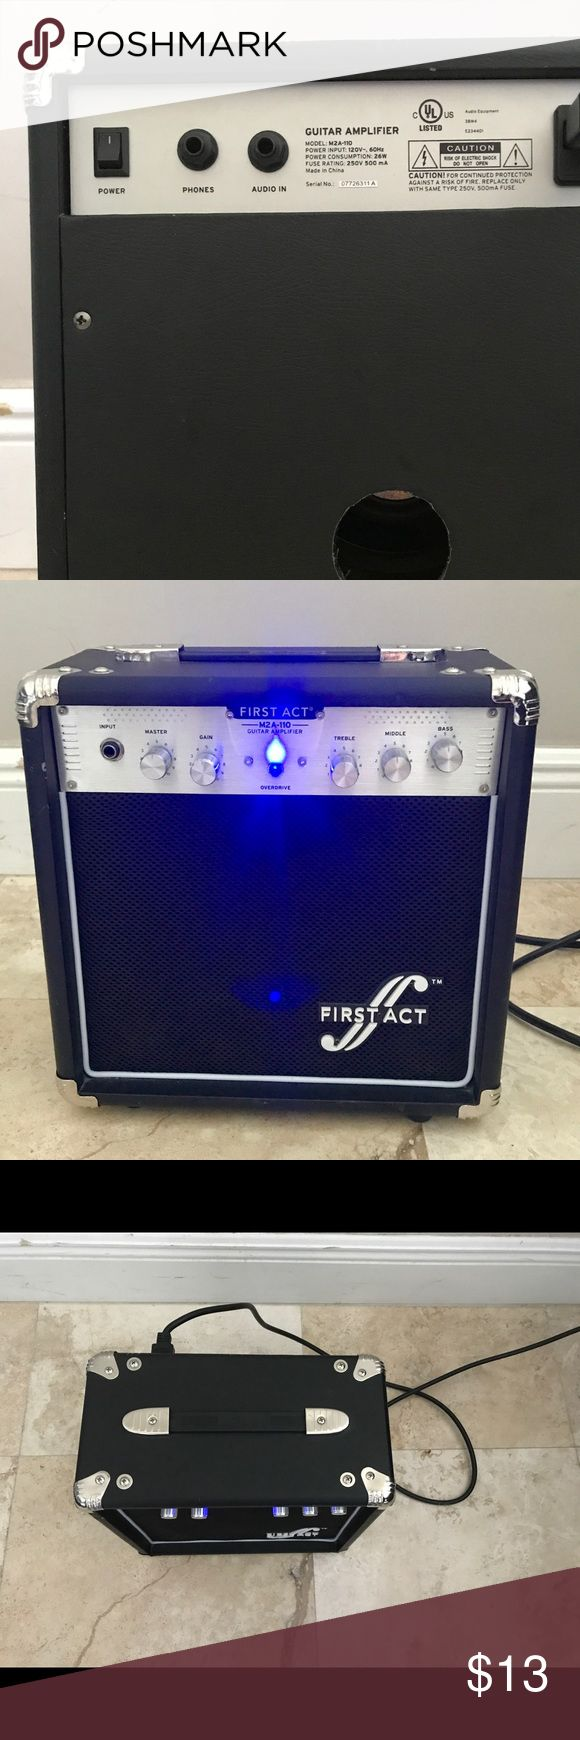 Guitar Bass Amplifier First Act: M2A-110 Almost new. Only used a few times. First Act Amplifier. First Act Other